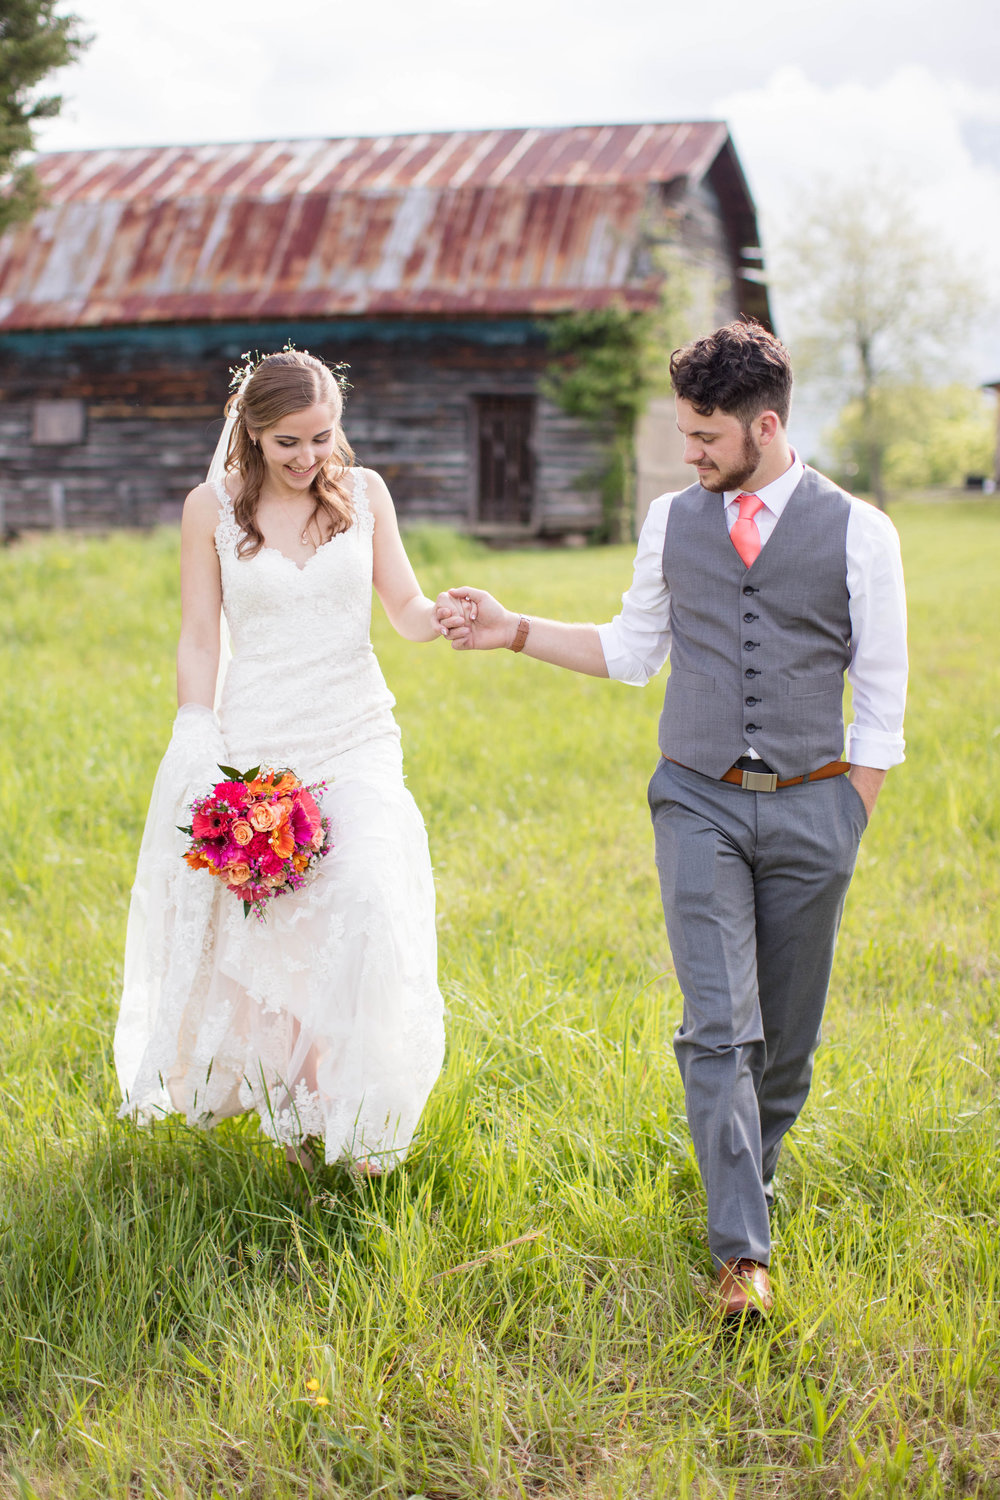 Wedding photography bride and groom first look with bouquet in field